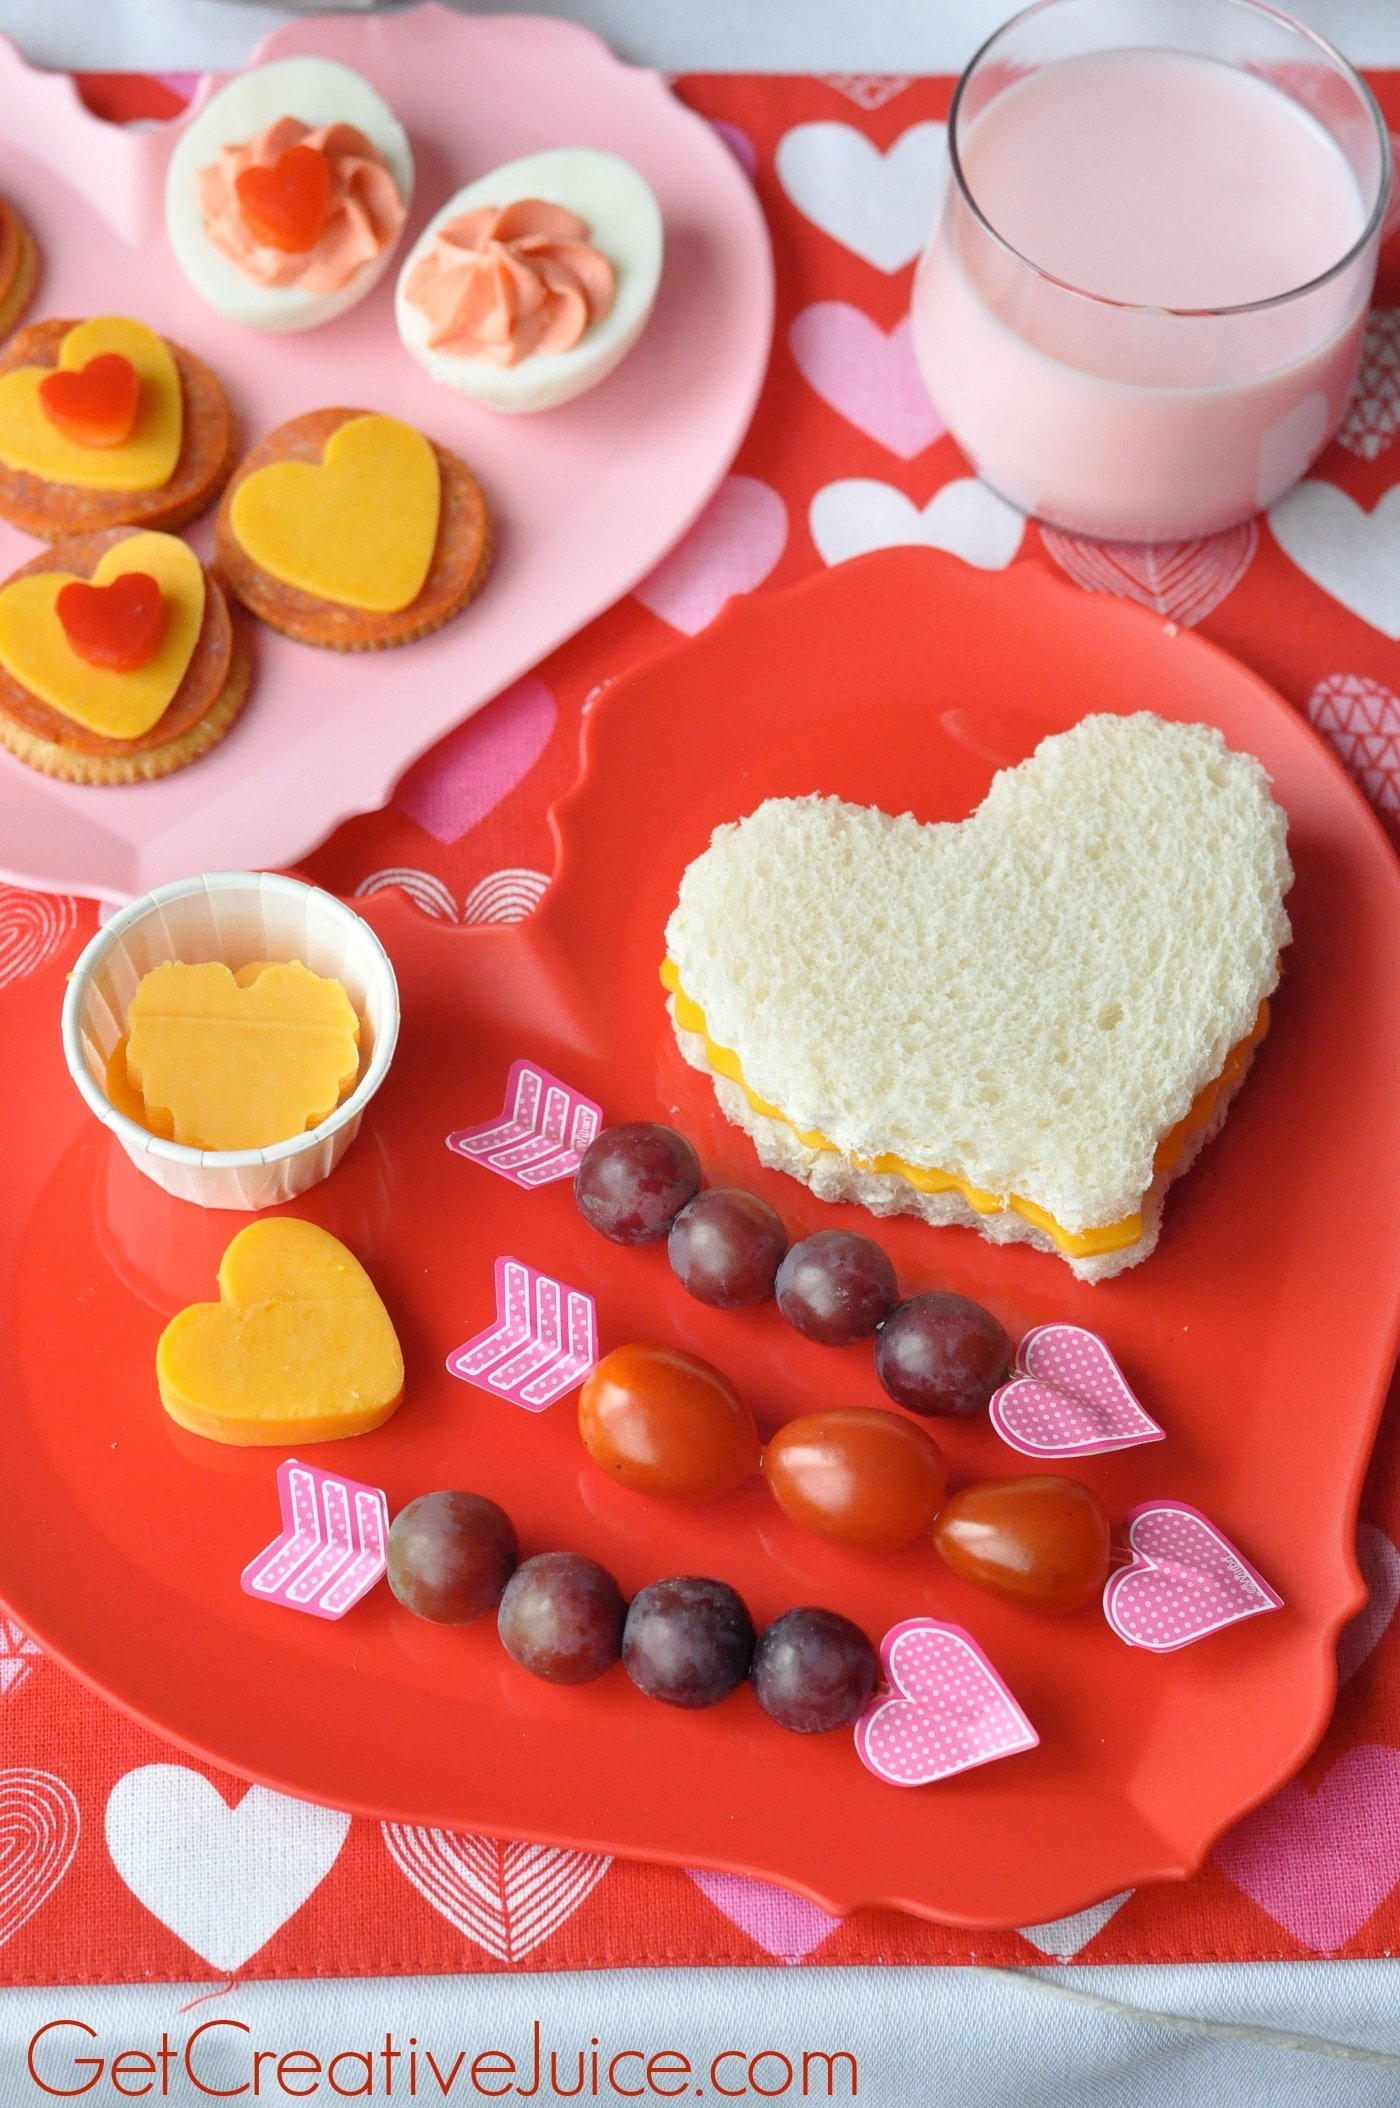 10 Pretty Food Ideas For Valentines Day valentine lunch ideas and snack ideas creative juice 1 2020